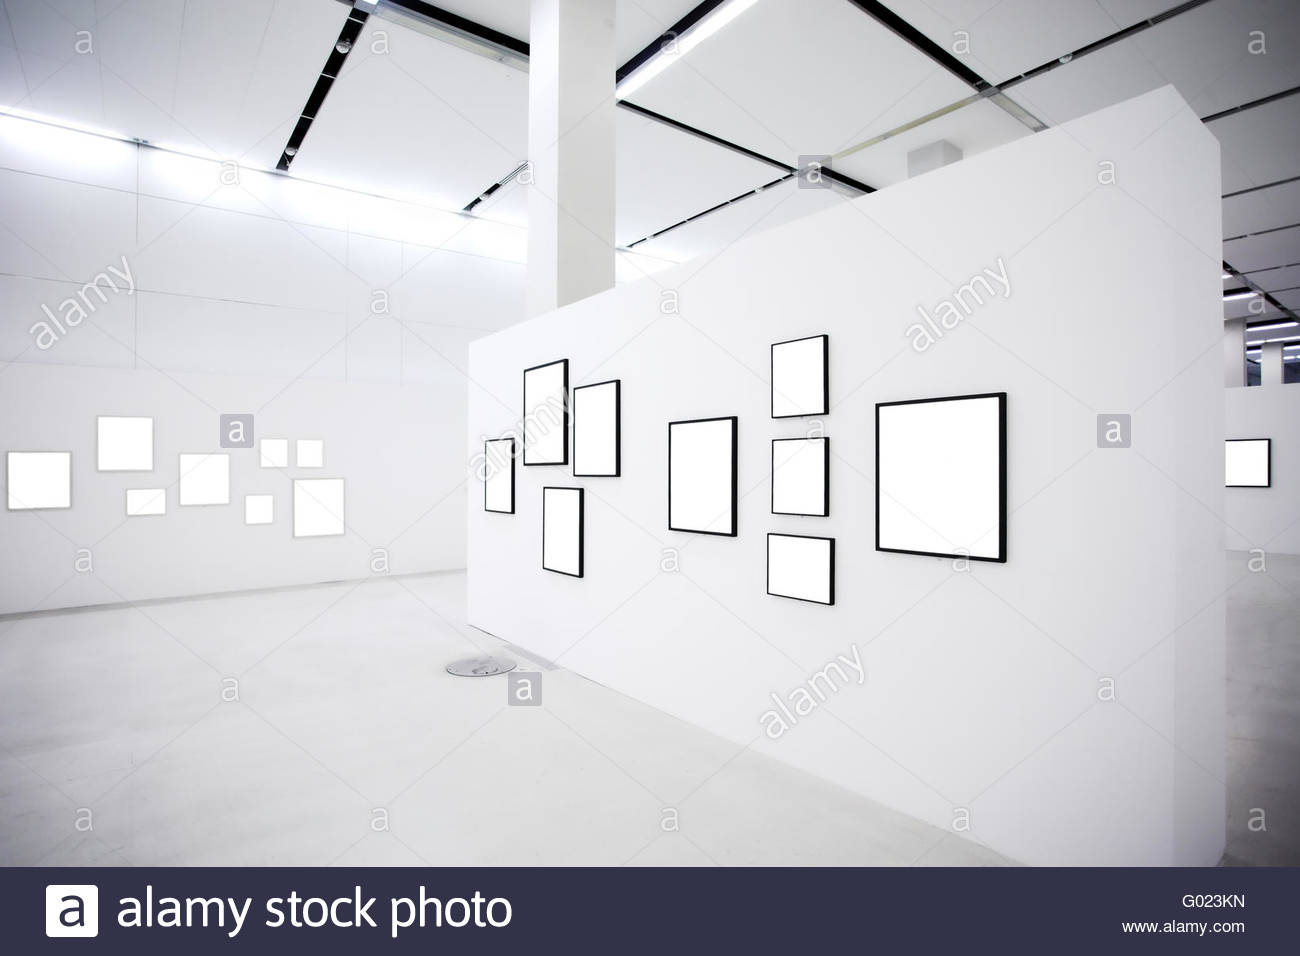 Exhibition in museum with many empty frames on white walls stock exhibition in museum with many empty frames on white walls sciox Images